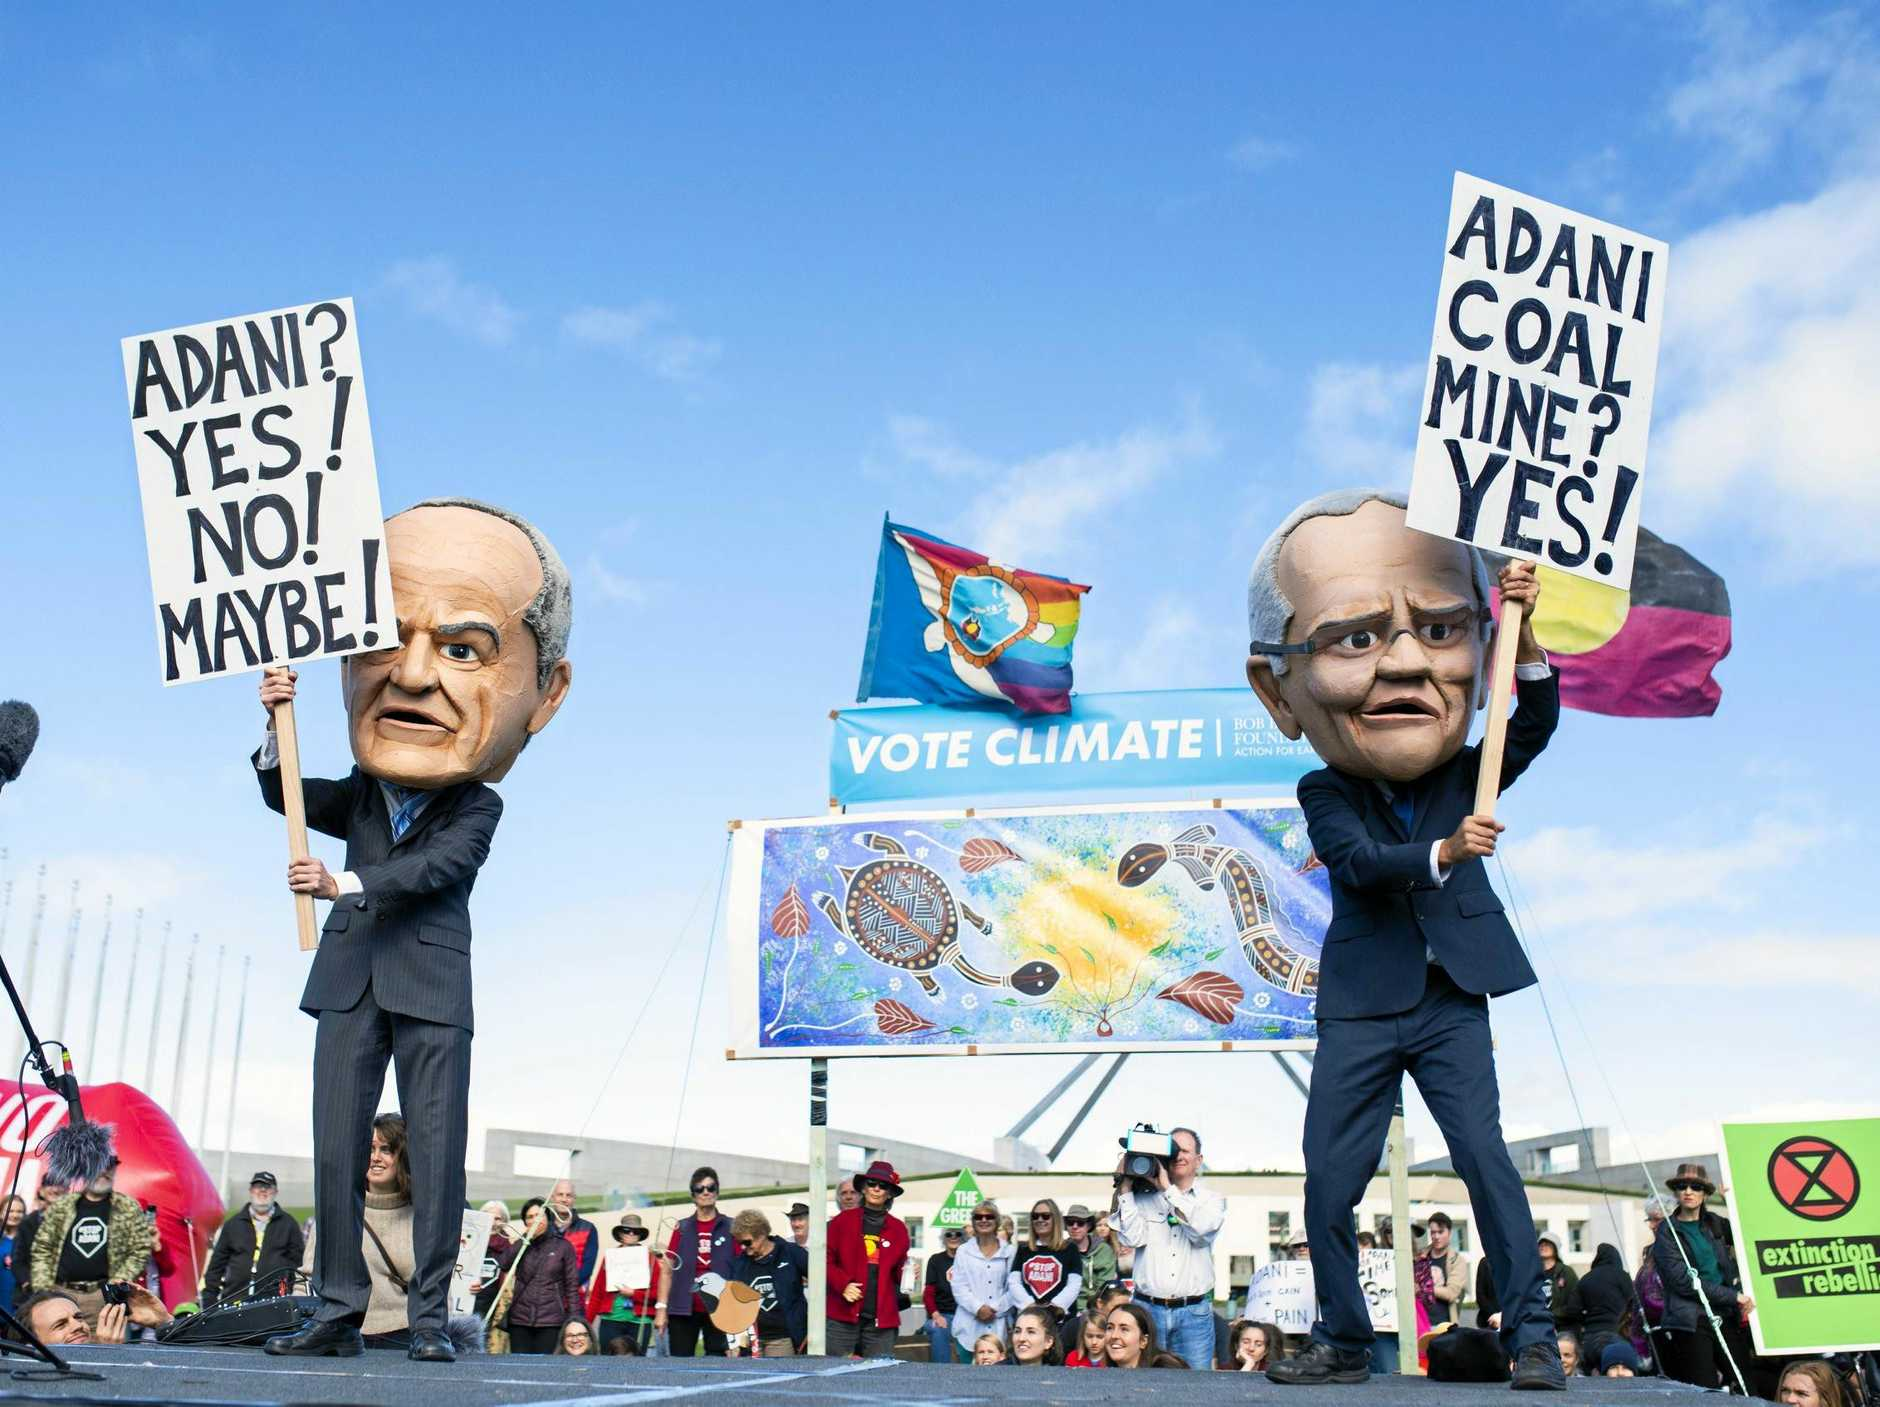 Protestors dressed as Scott Morrison and Bill Shorten during the anti-Adani Rally outside Parliament House in Canberra.